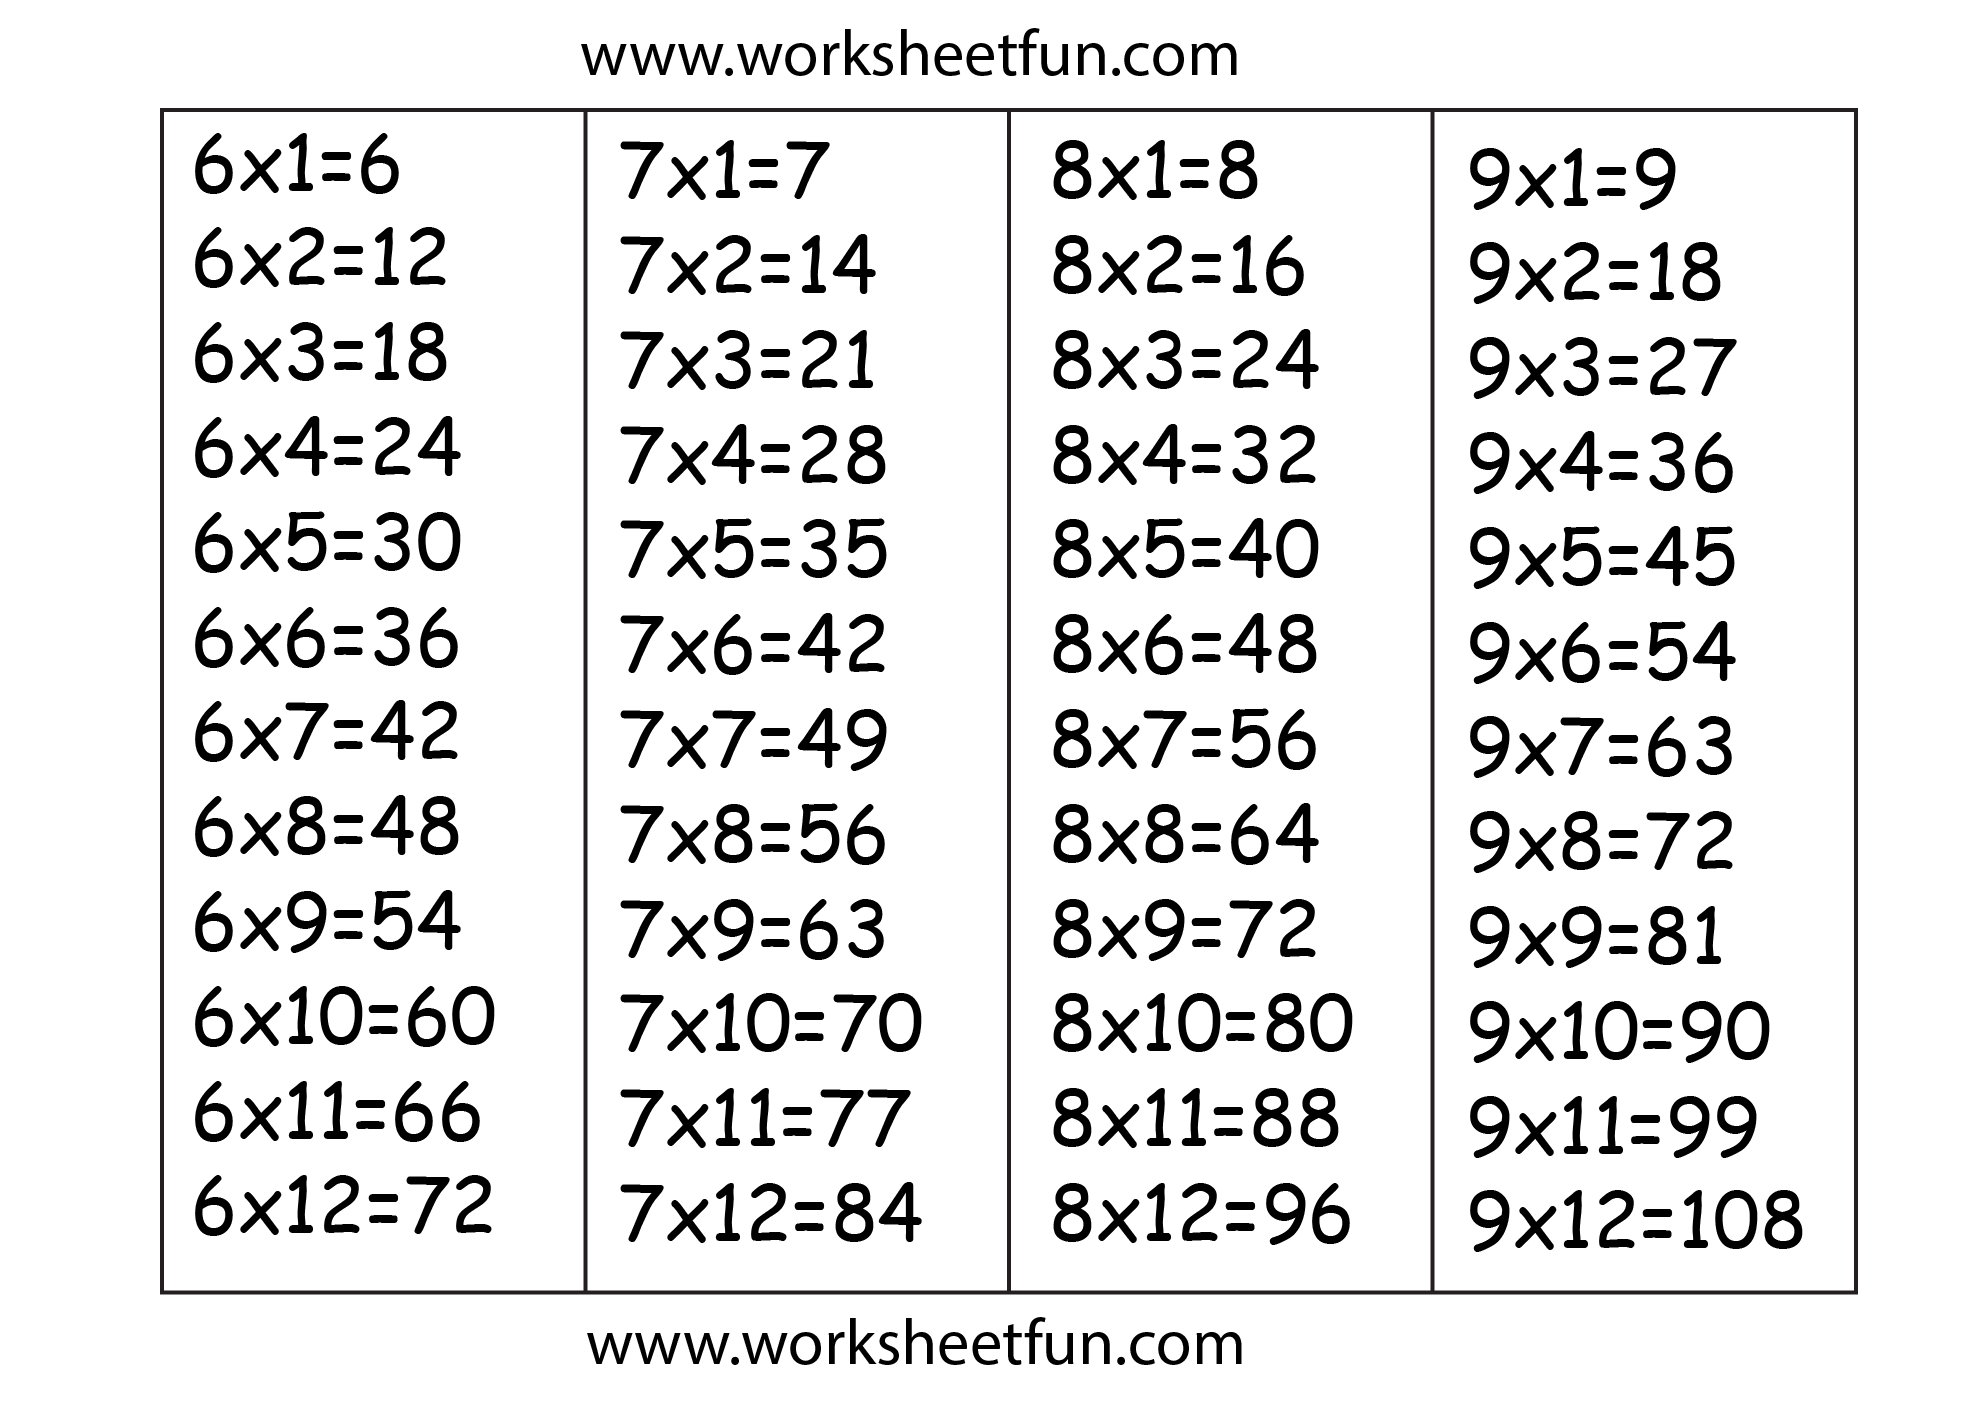 Times Table Chart 6 7 8 Amp 9 Free Printable Worksheets Worksheetfun